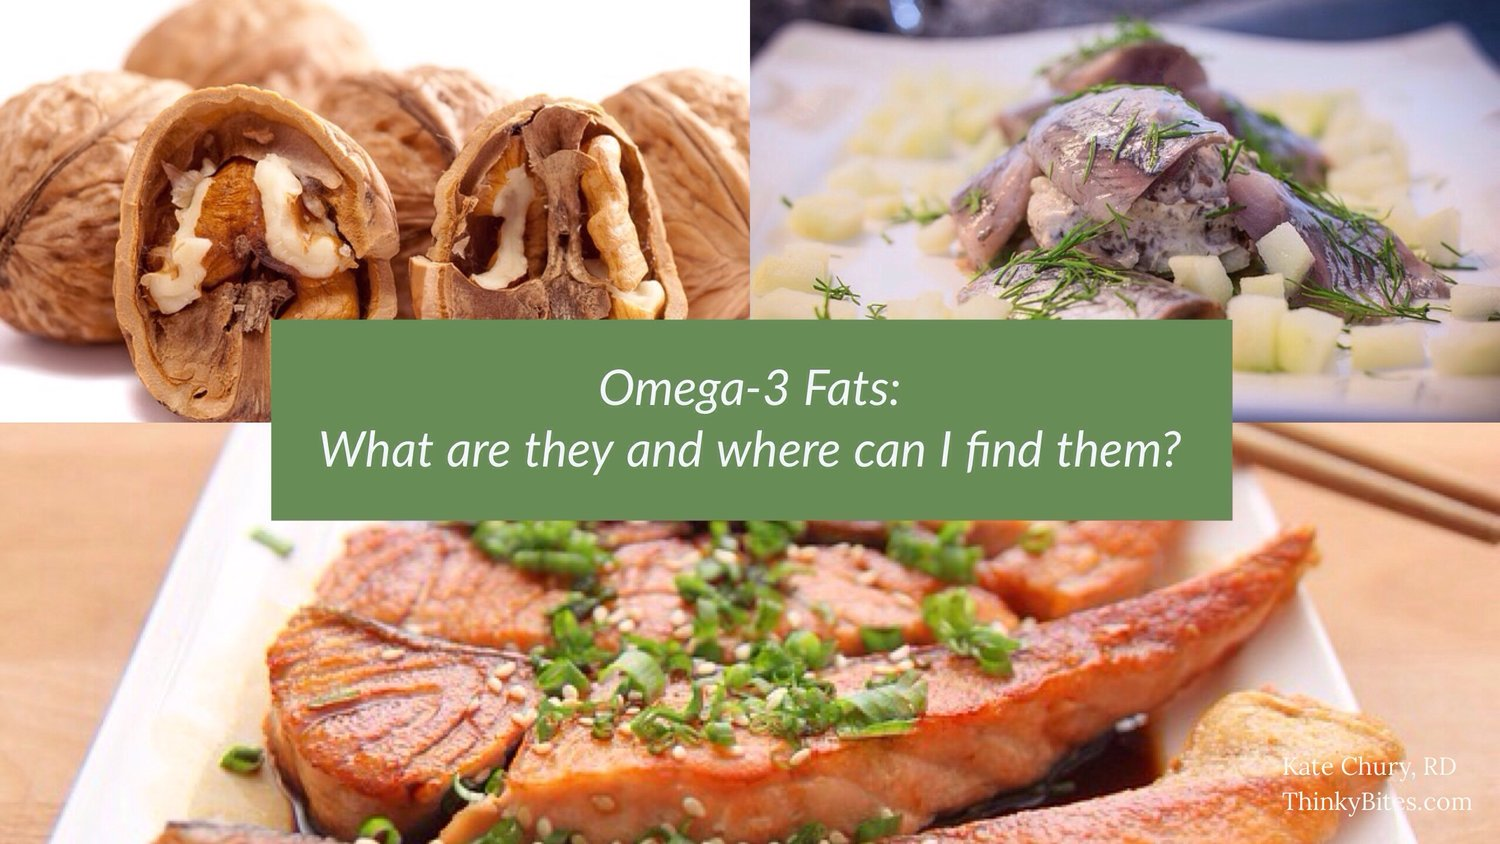 Omega-3 Fats: What are they and where can I find them?